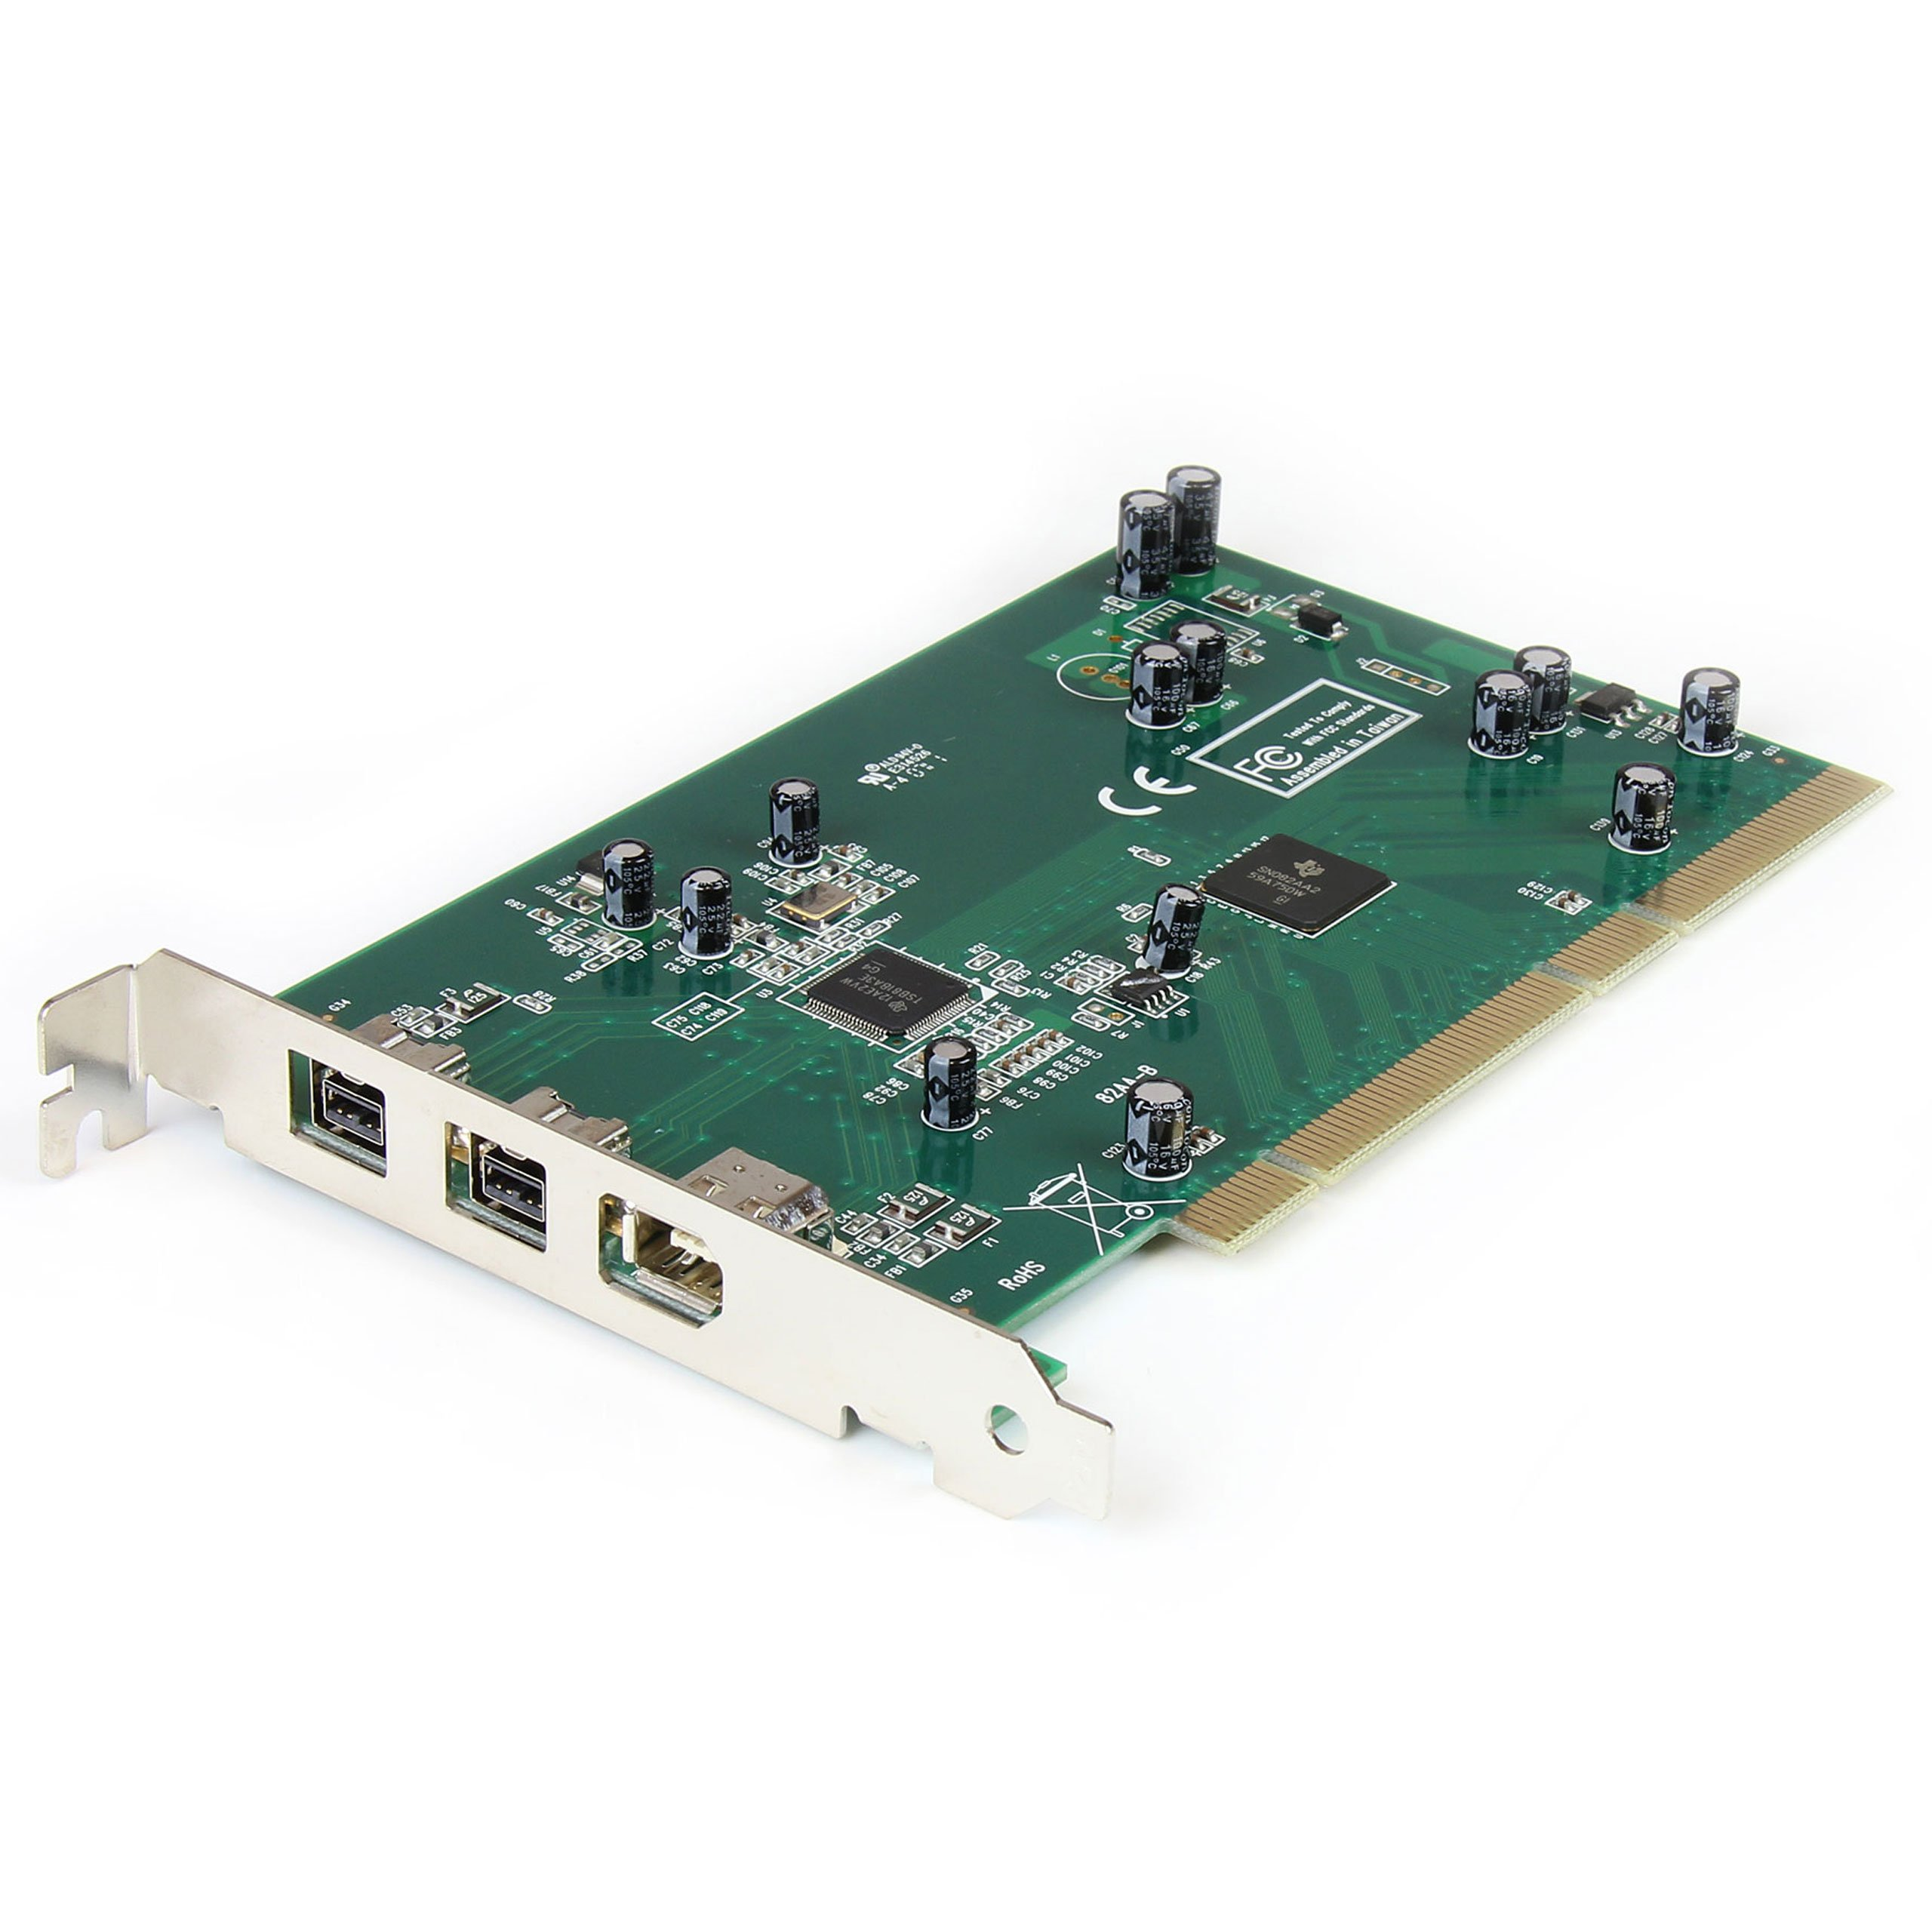 StarTech.com 3 Port 2b 1a PCI 1394b FireWire Adapter Card with DV Editing Kit (PCI1394B_3) by StarTech